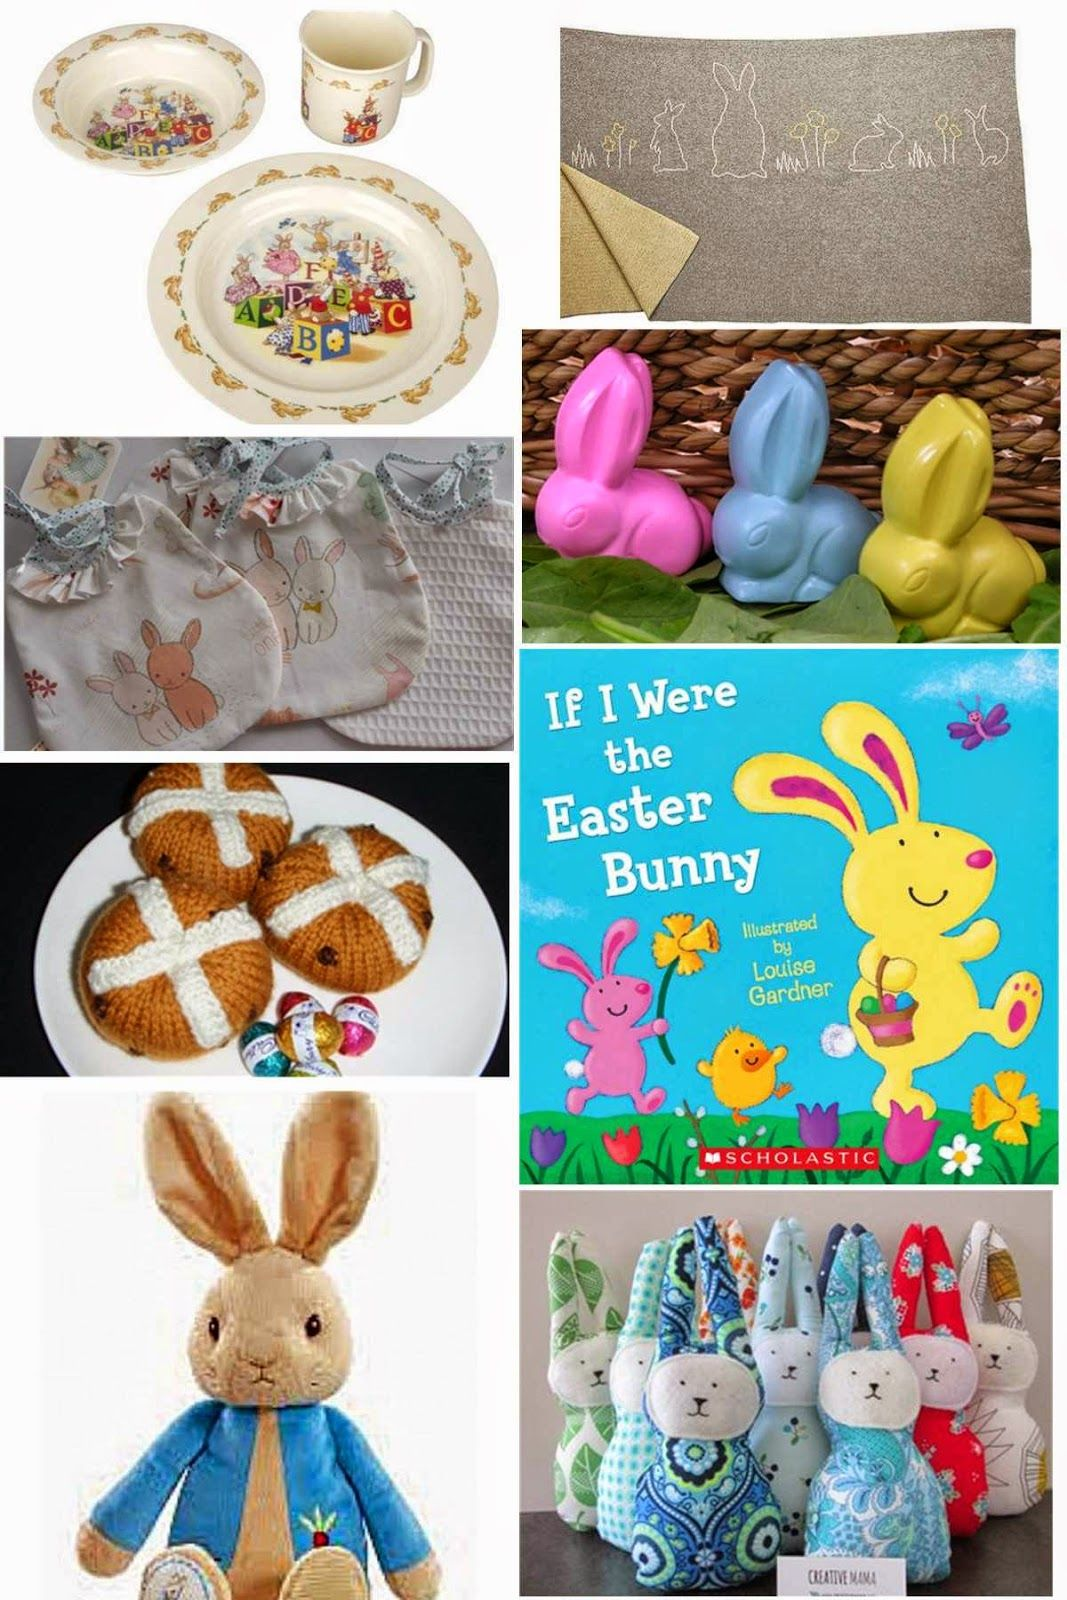 Chocolatefree easter gift ideas for young children